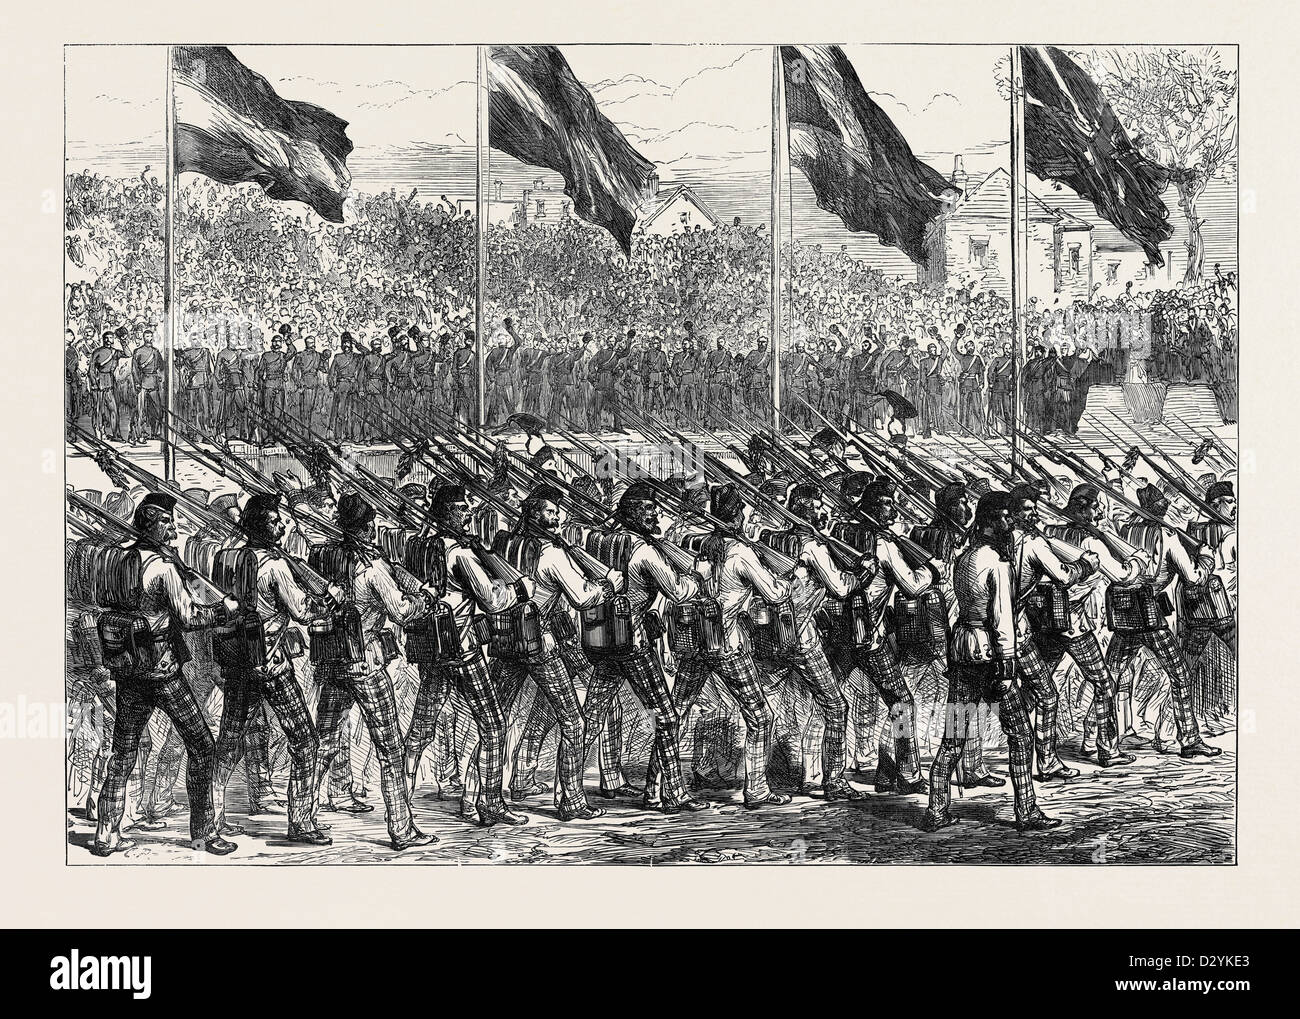 RETURN OF THE TROOPS FROM ASHANTEE: THE BLACK WATCH (42ND HIGHLANDERS) MARCHING TO GOVERNOR'S GREEN PORTSMOUTH - Stock Image